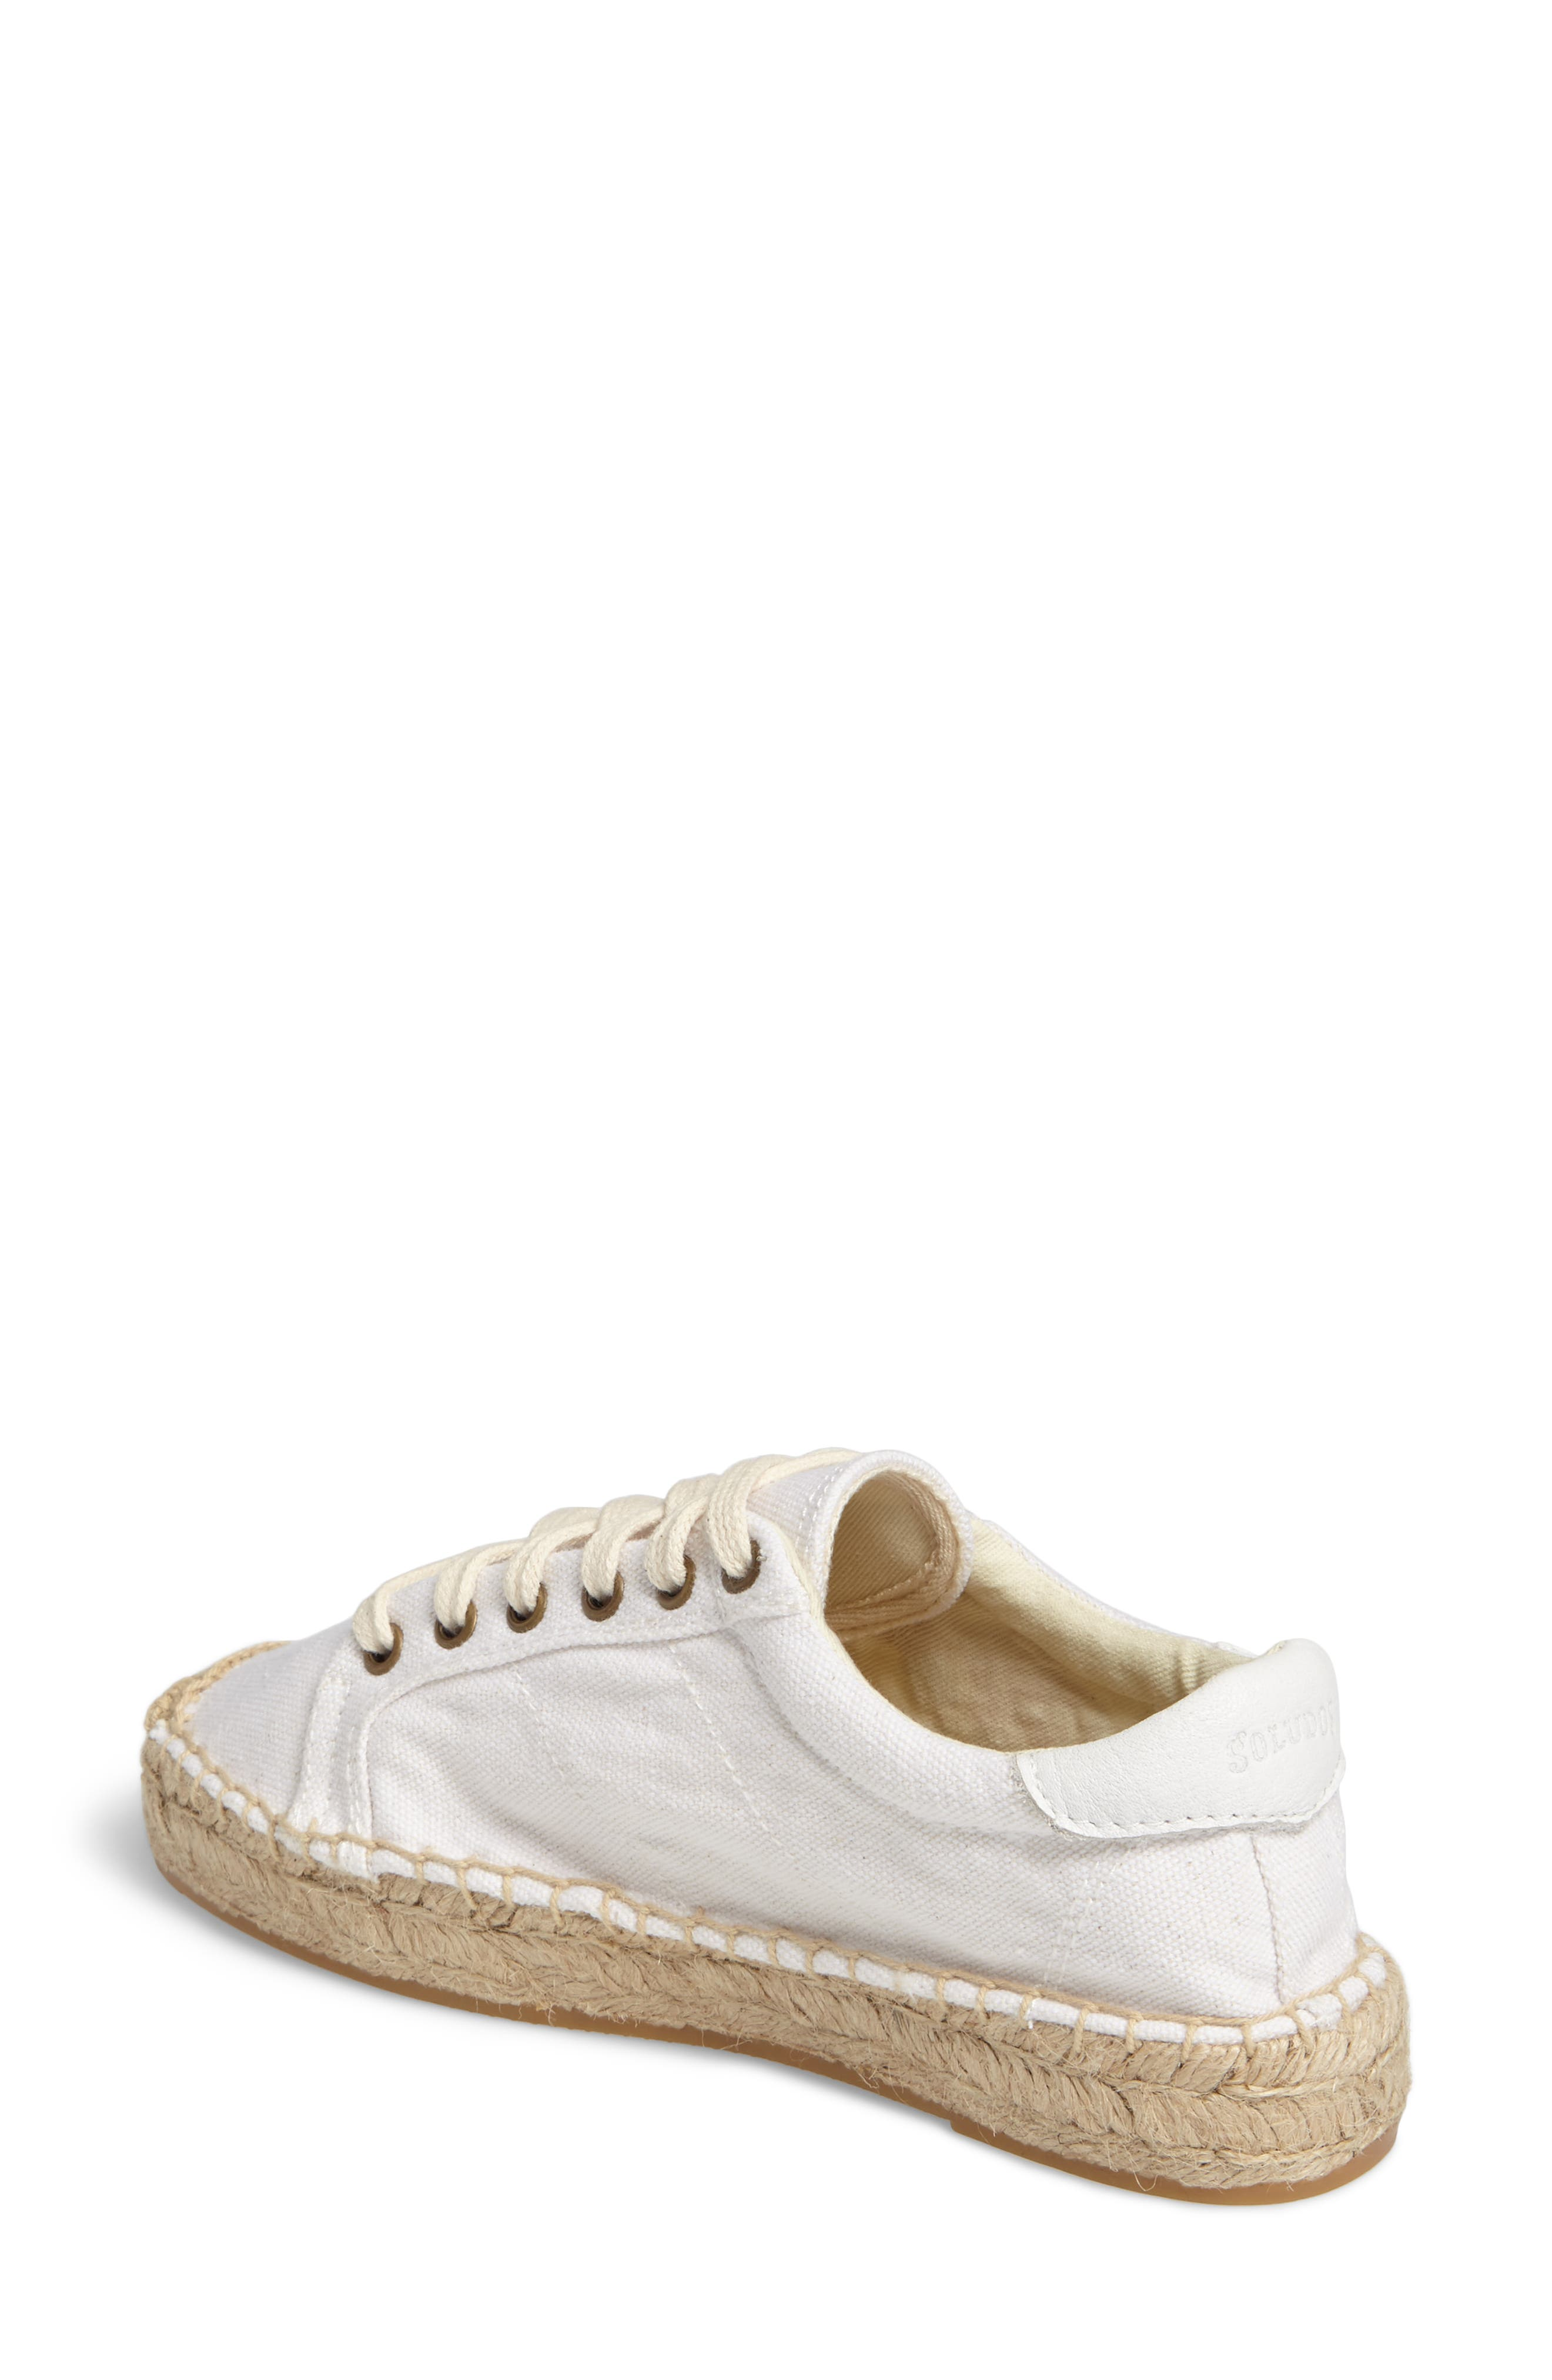 Floral Embroidered Espadrille Sneaker,                             Alternate thumbnail 2, color,                             White Canvas